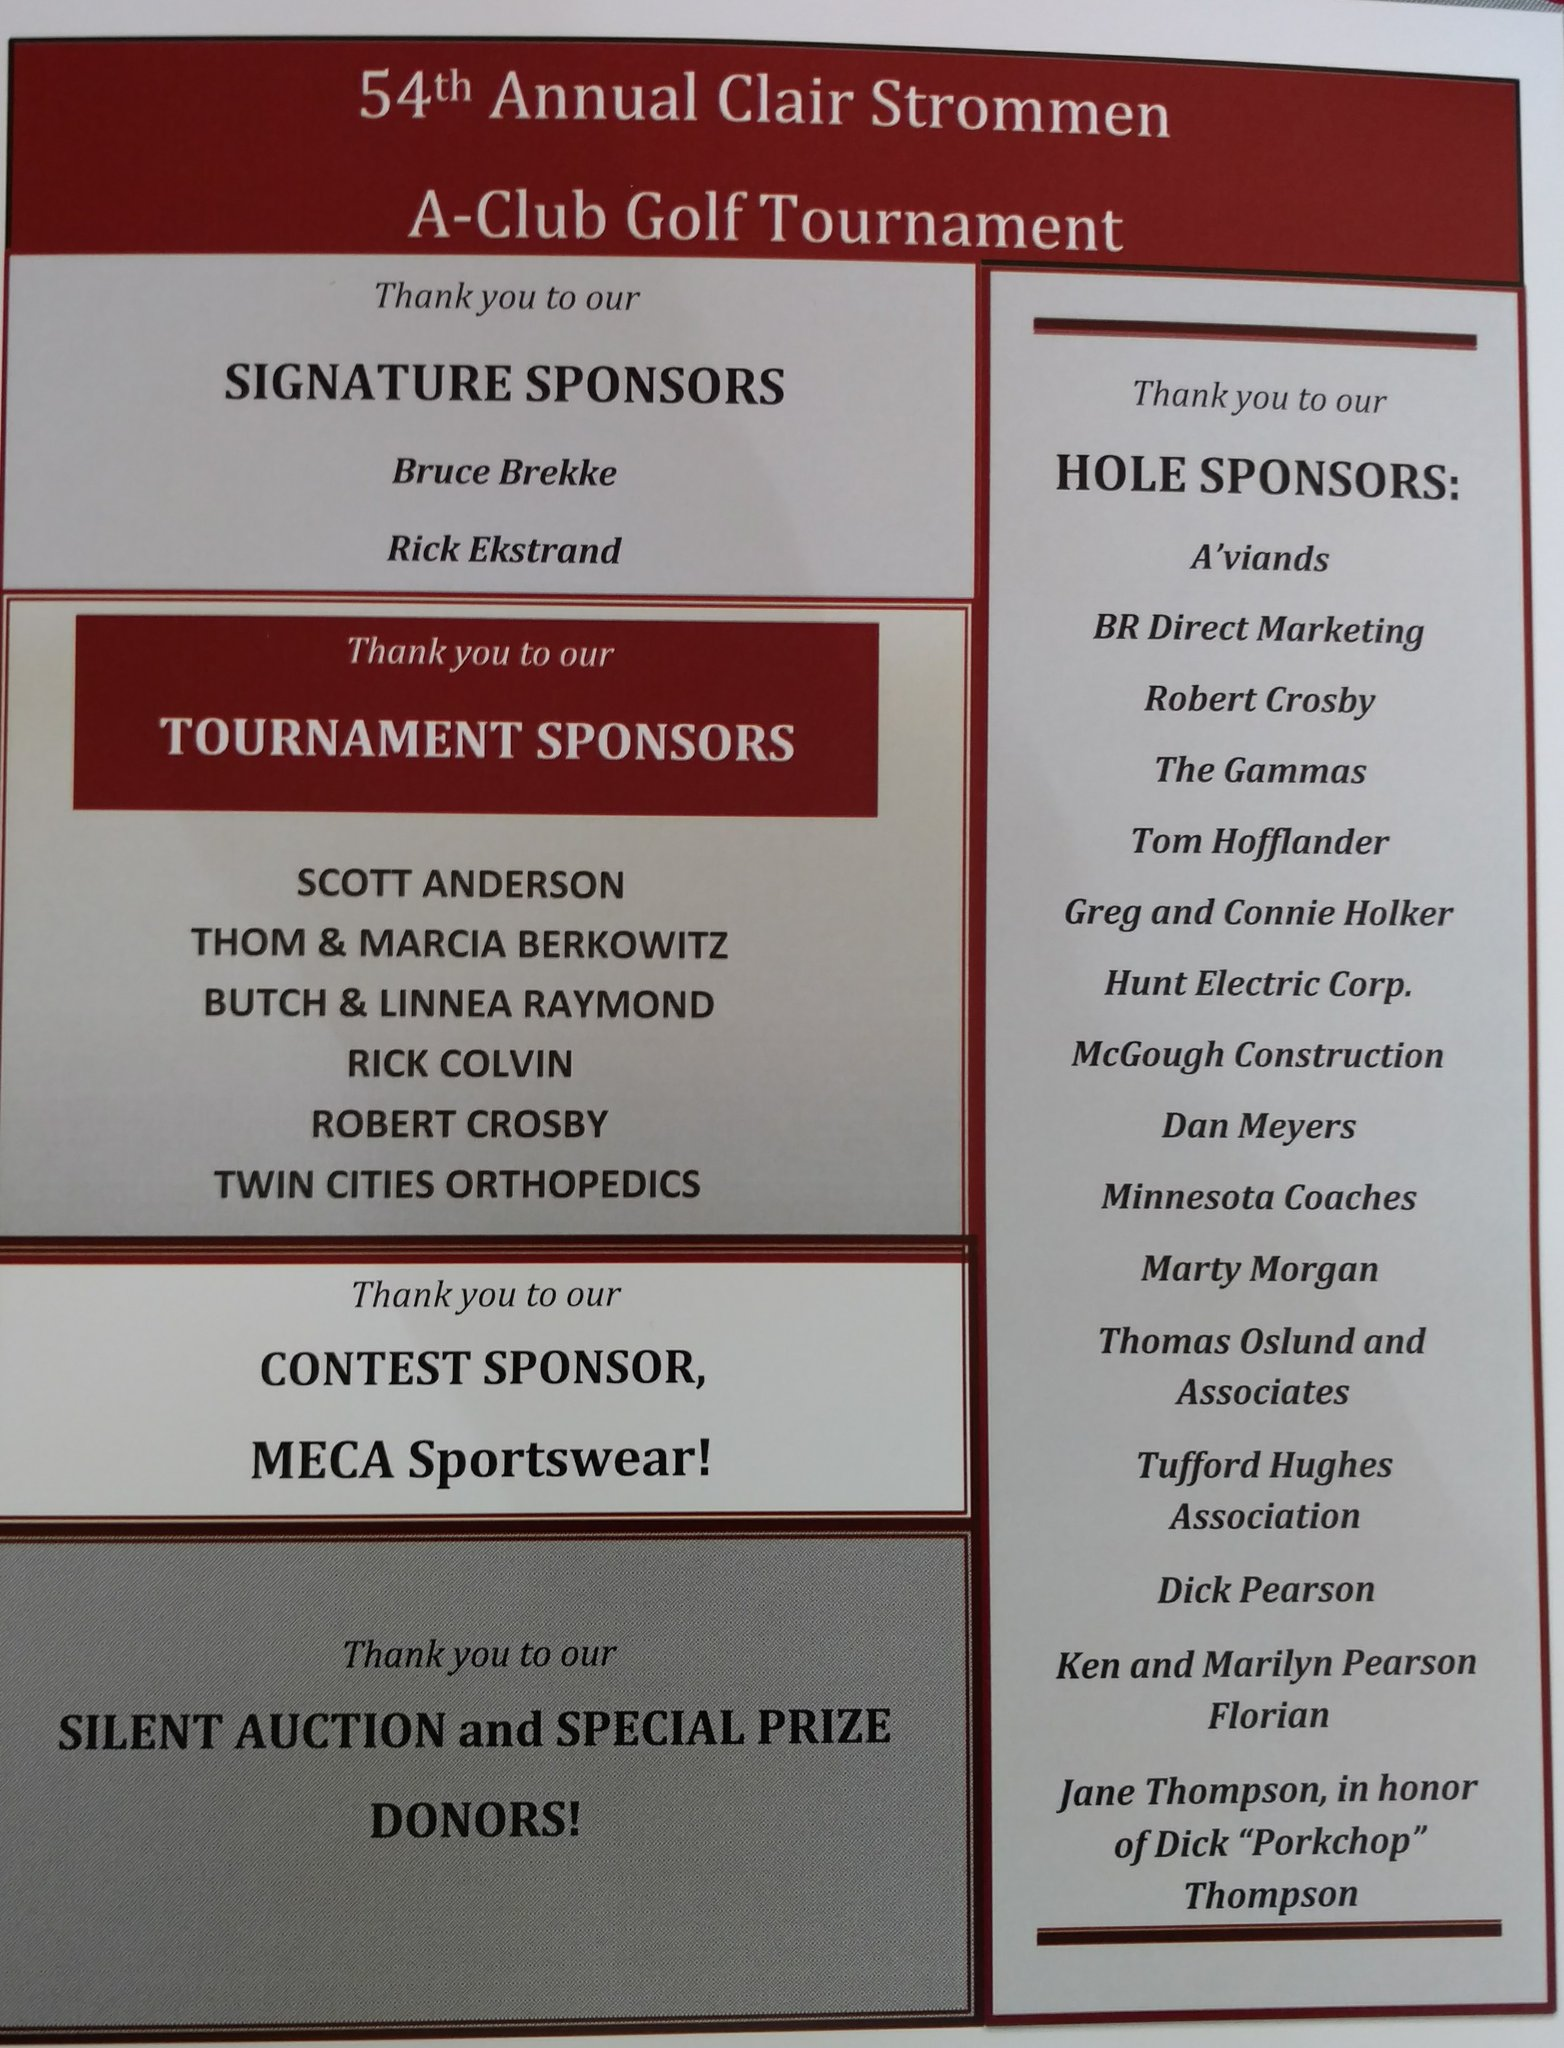 Thank you to all our sponsors for the Augsburg Clair Strommen A-Club Golf Tourney! #AuggiePride https://t.co/GFNmUJGRmr